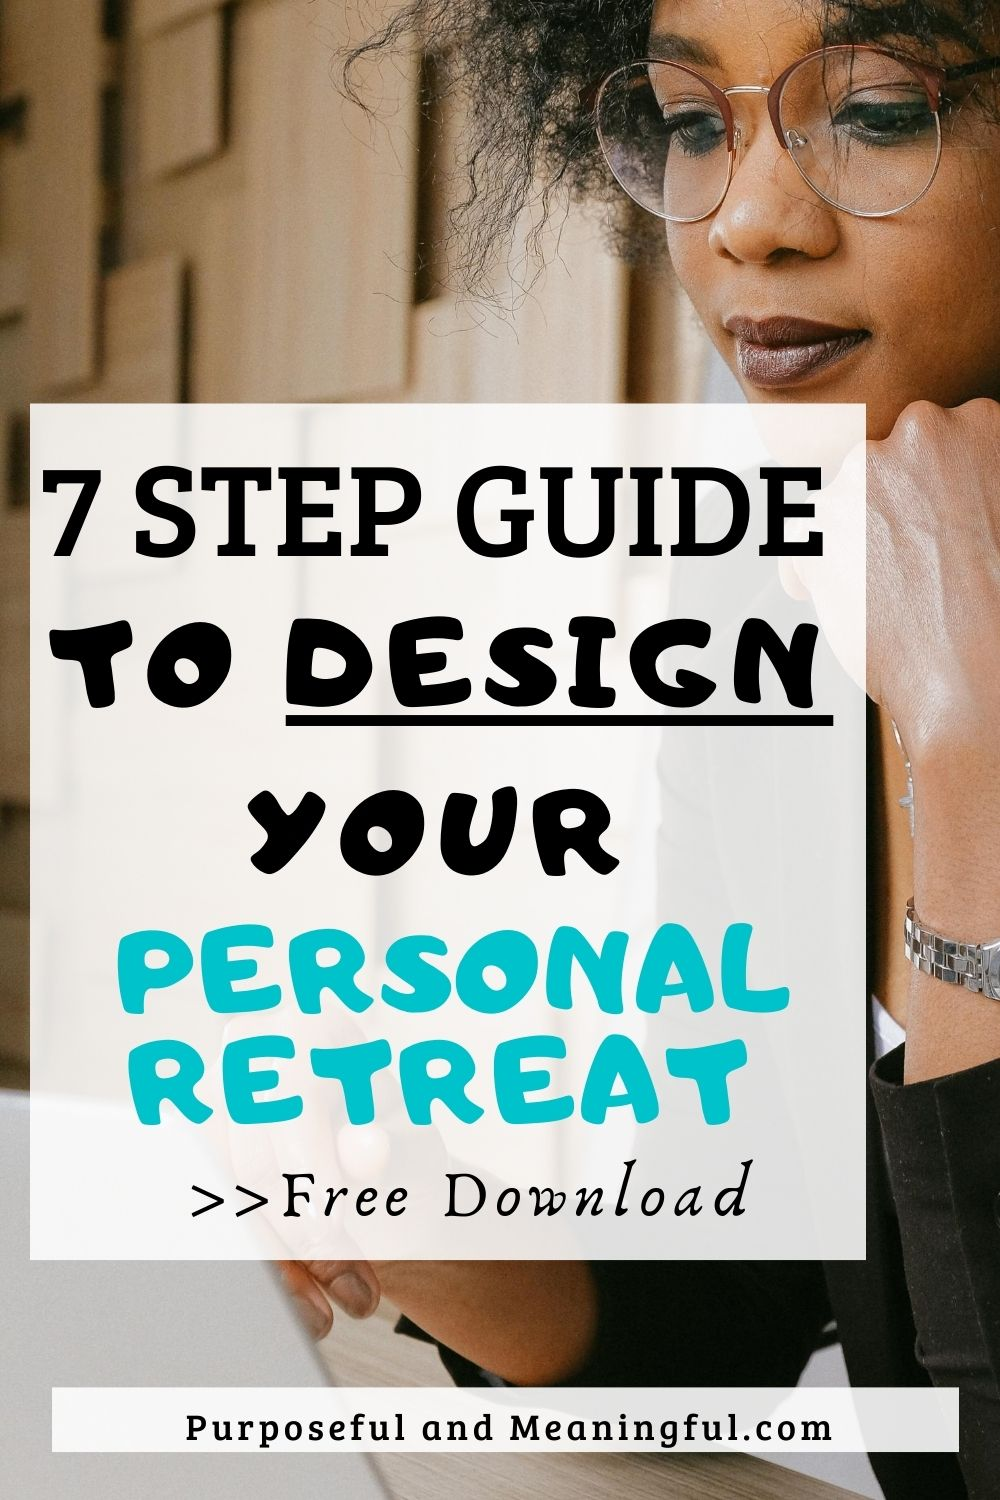 7 Step Guide To Design Your Personal Retreat